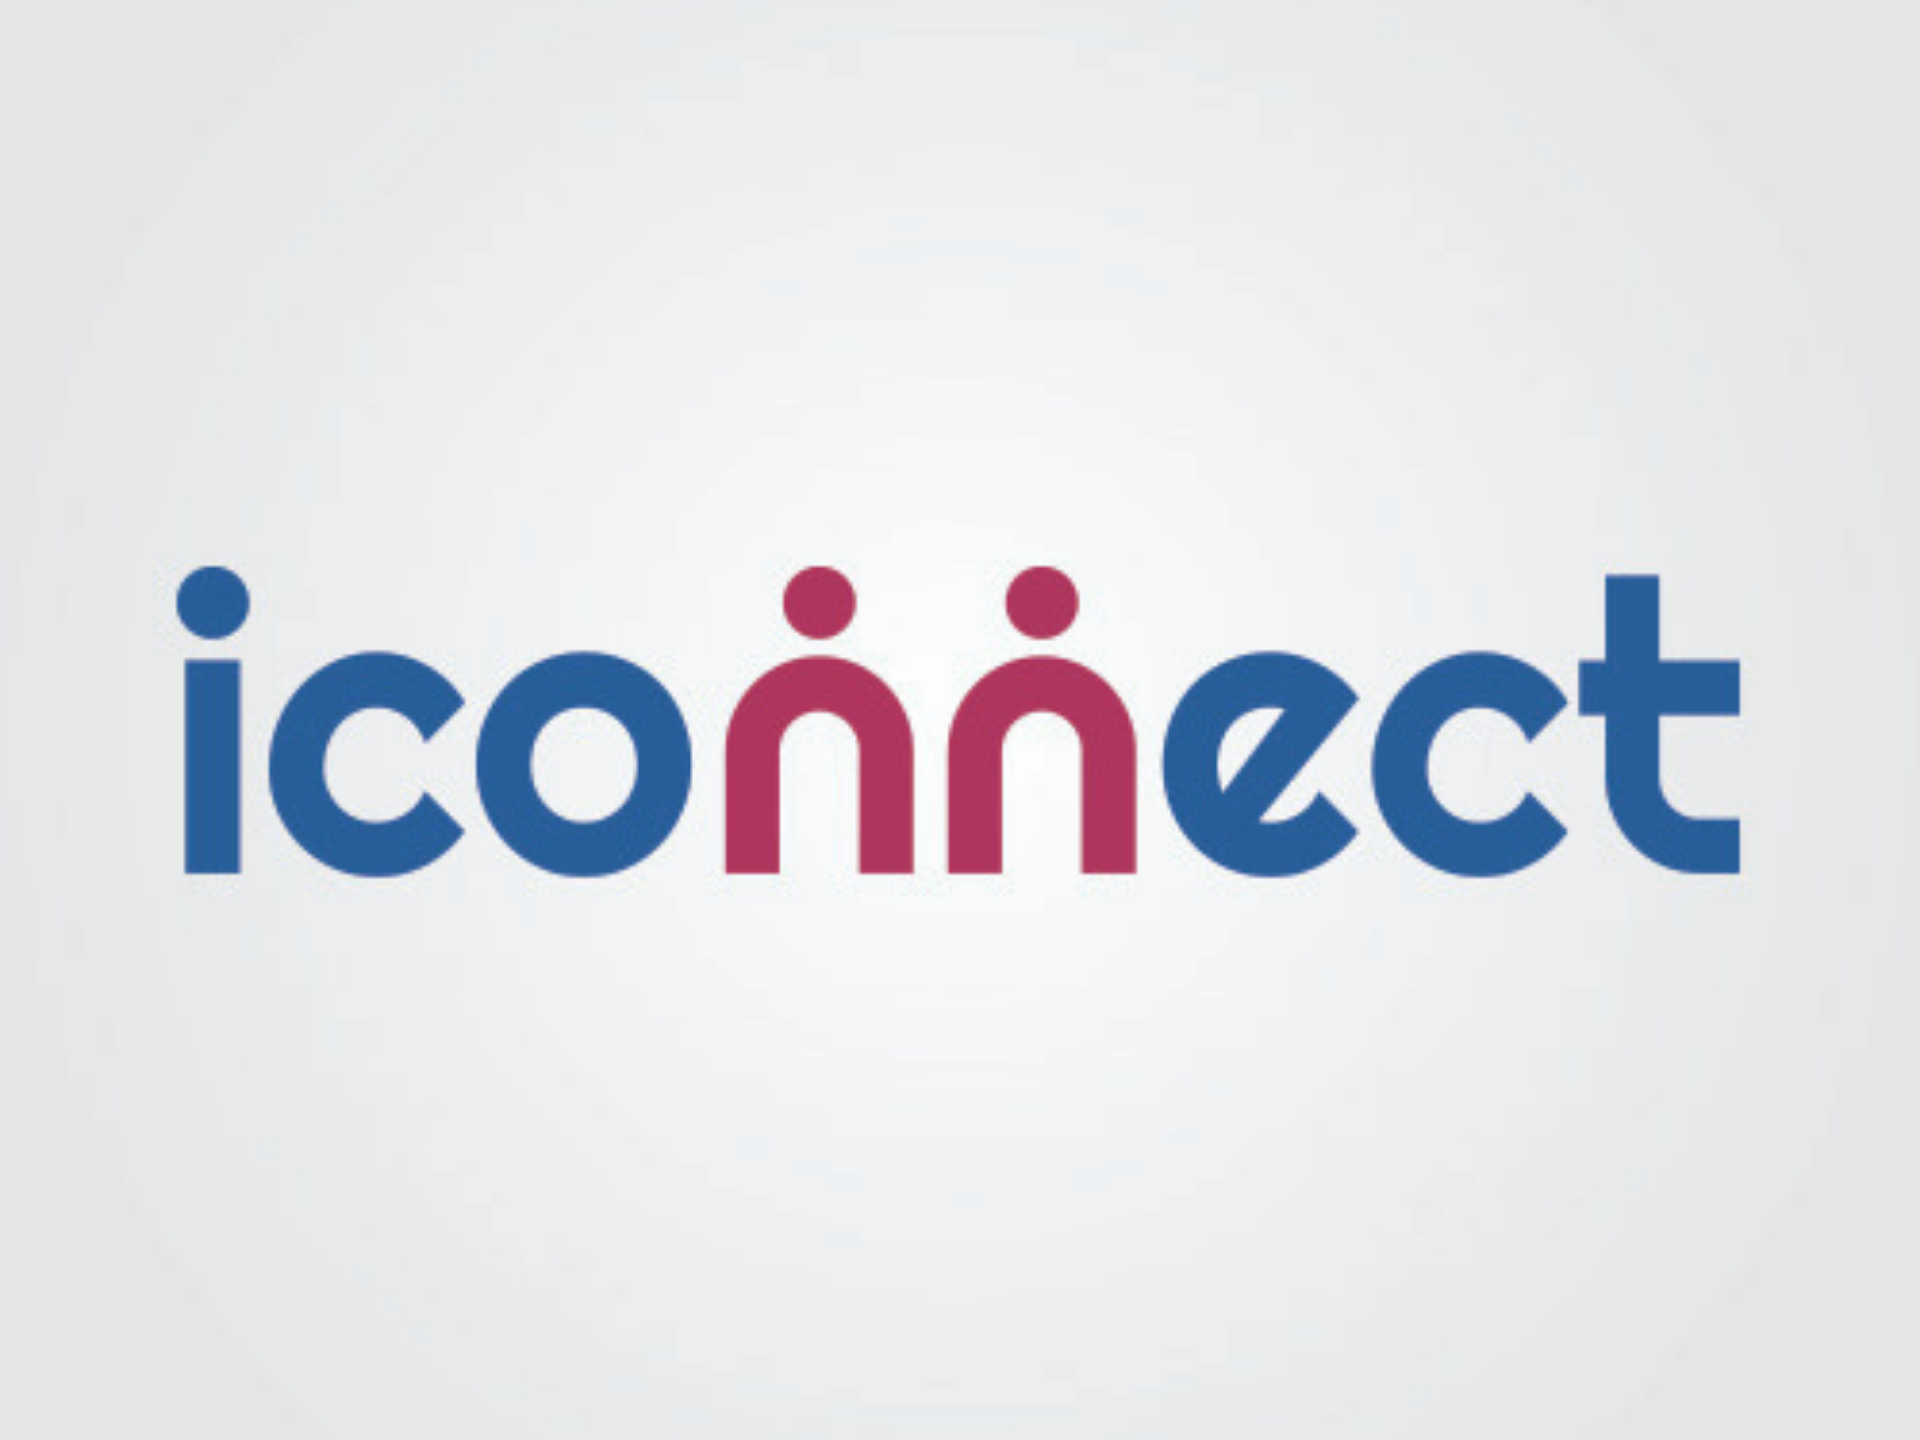 iconnect2